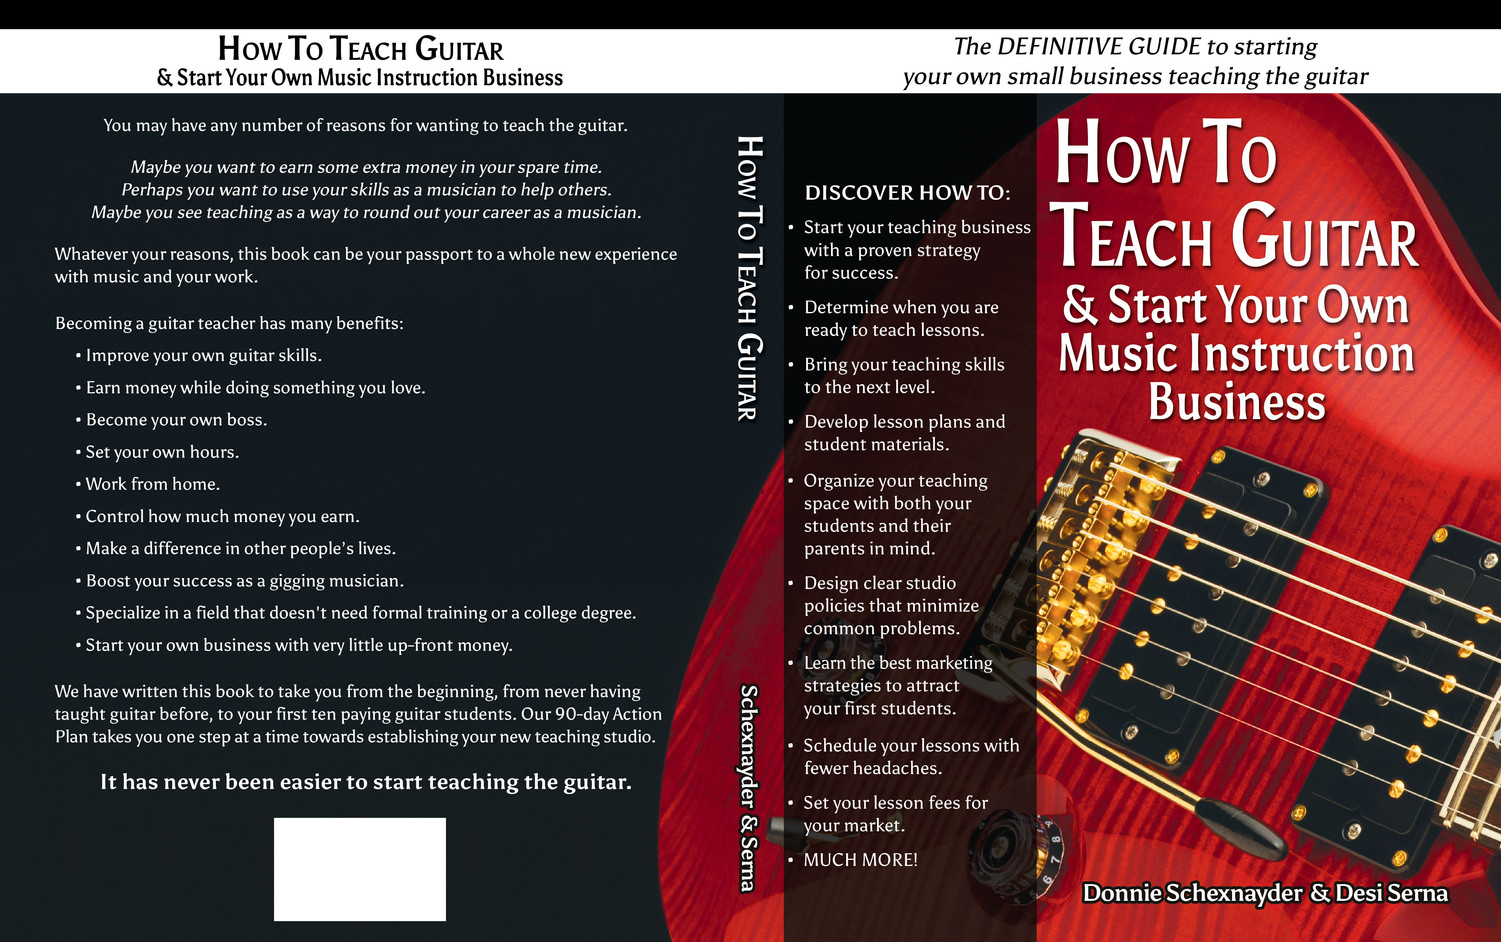 How to Teach Guitar